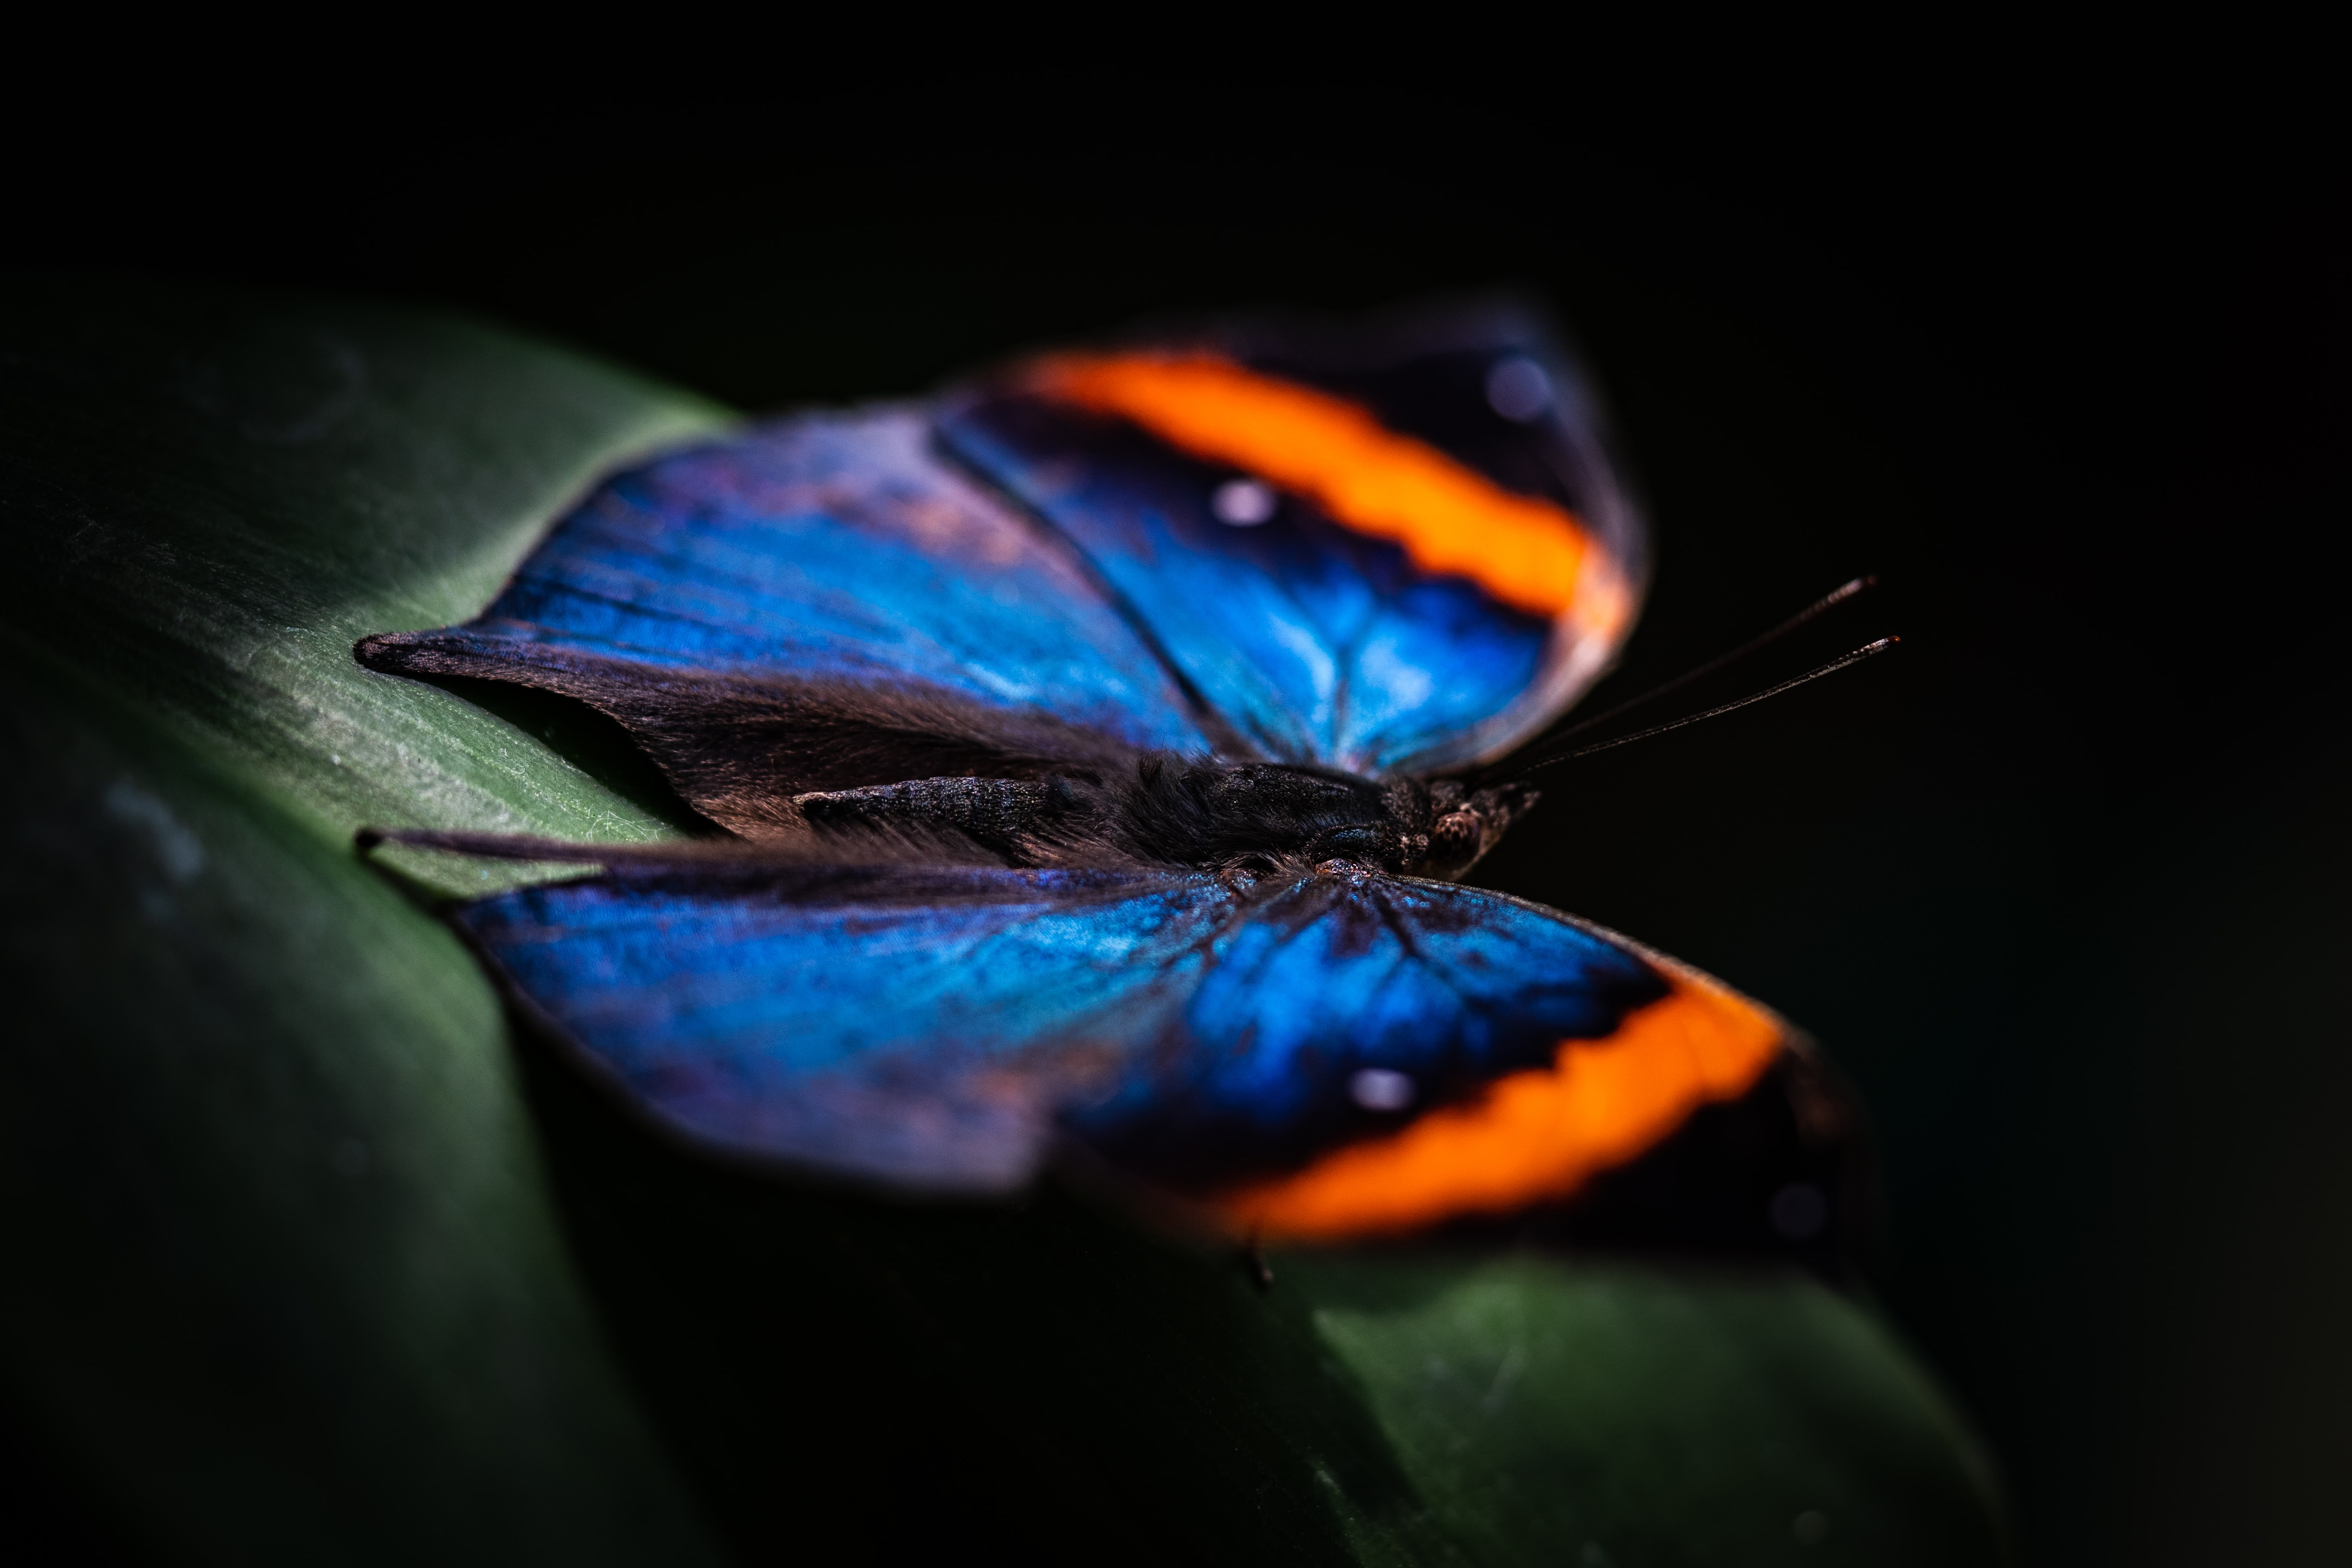 closeup photography of blue and orange butterfly on green leaf